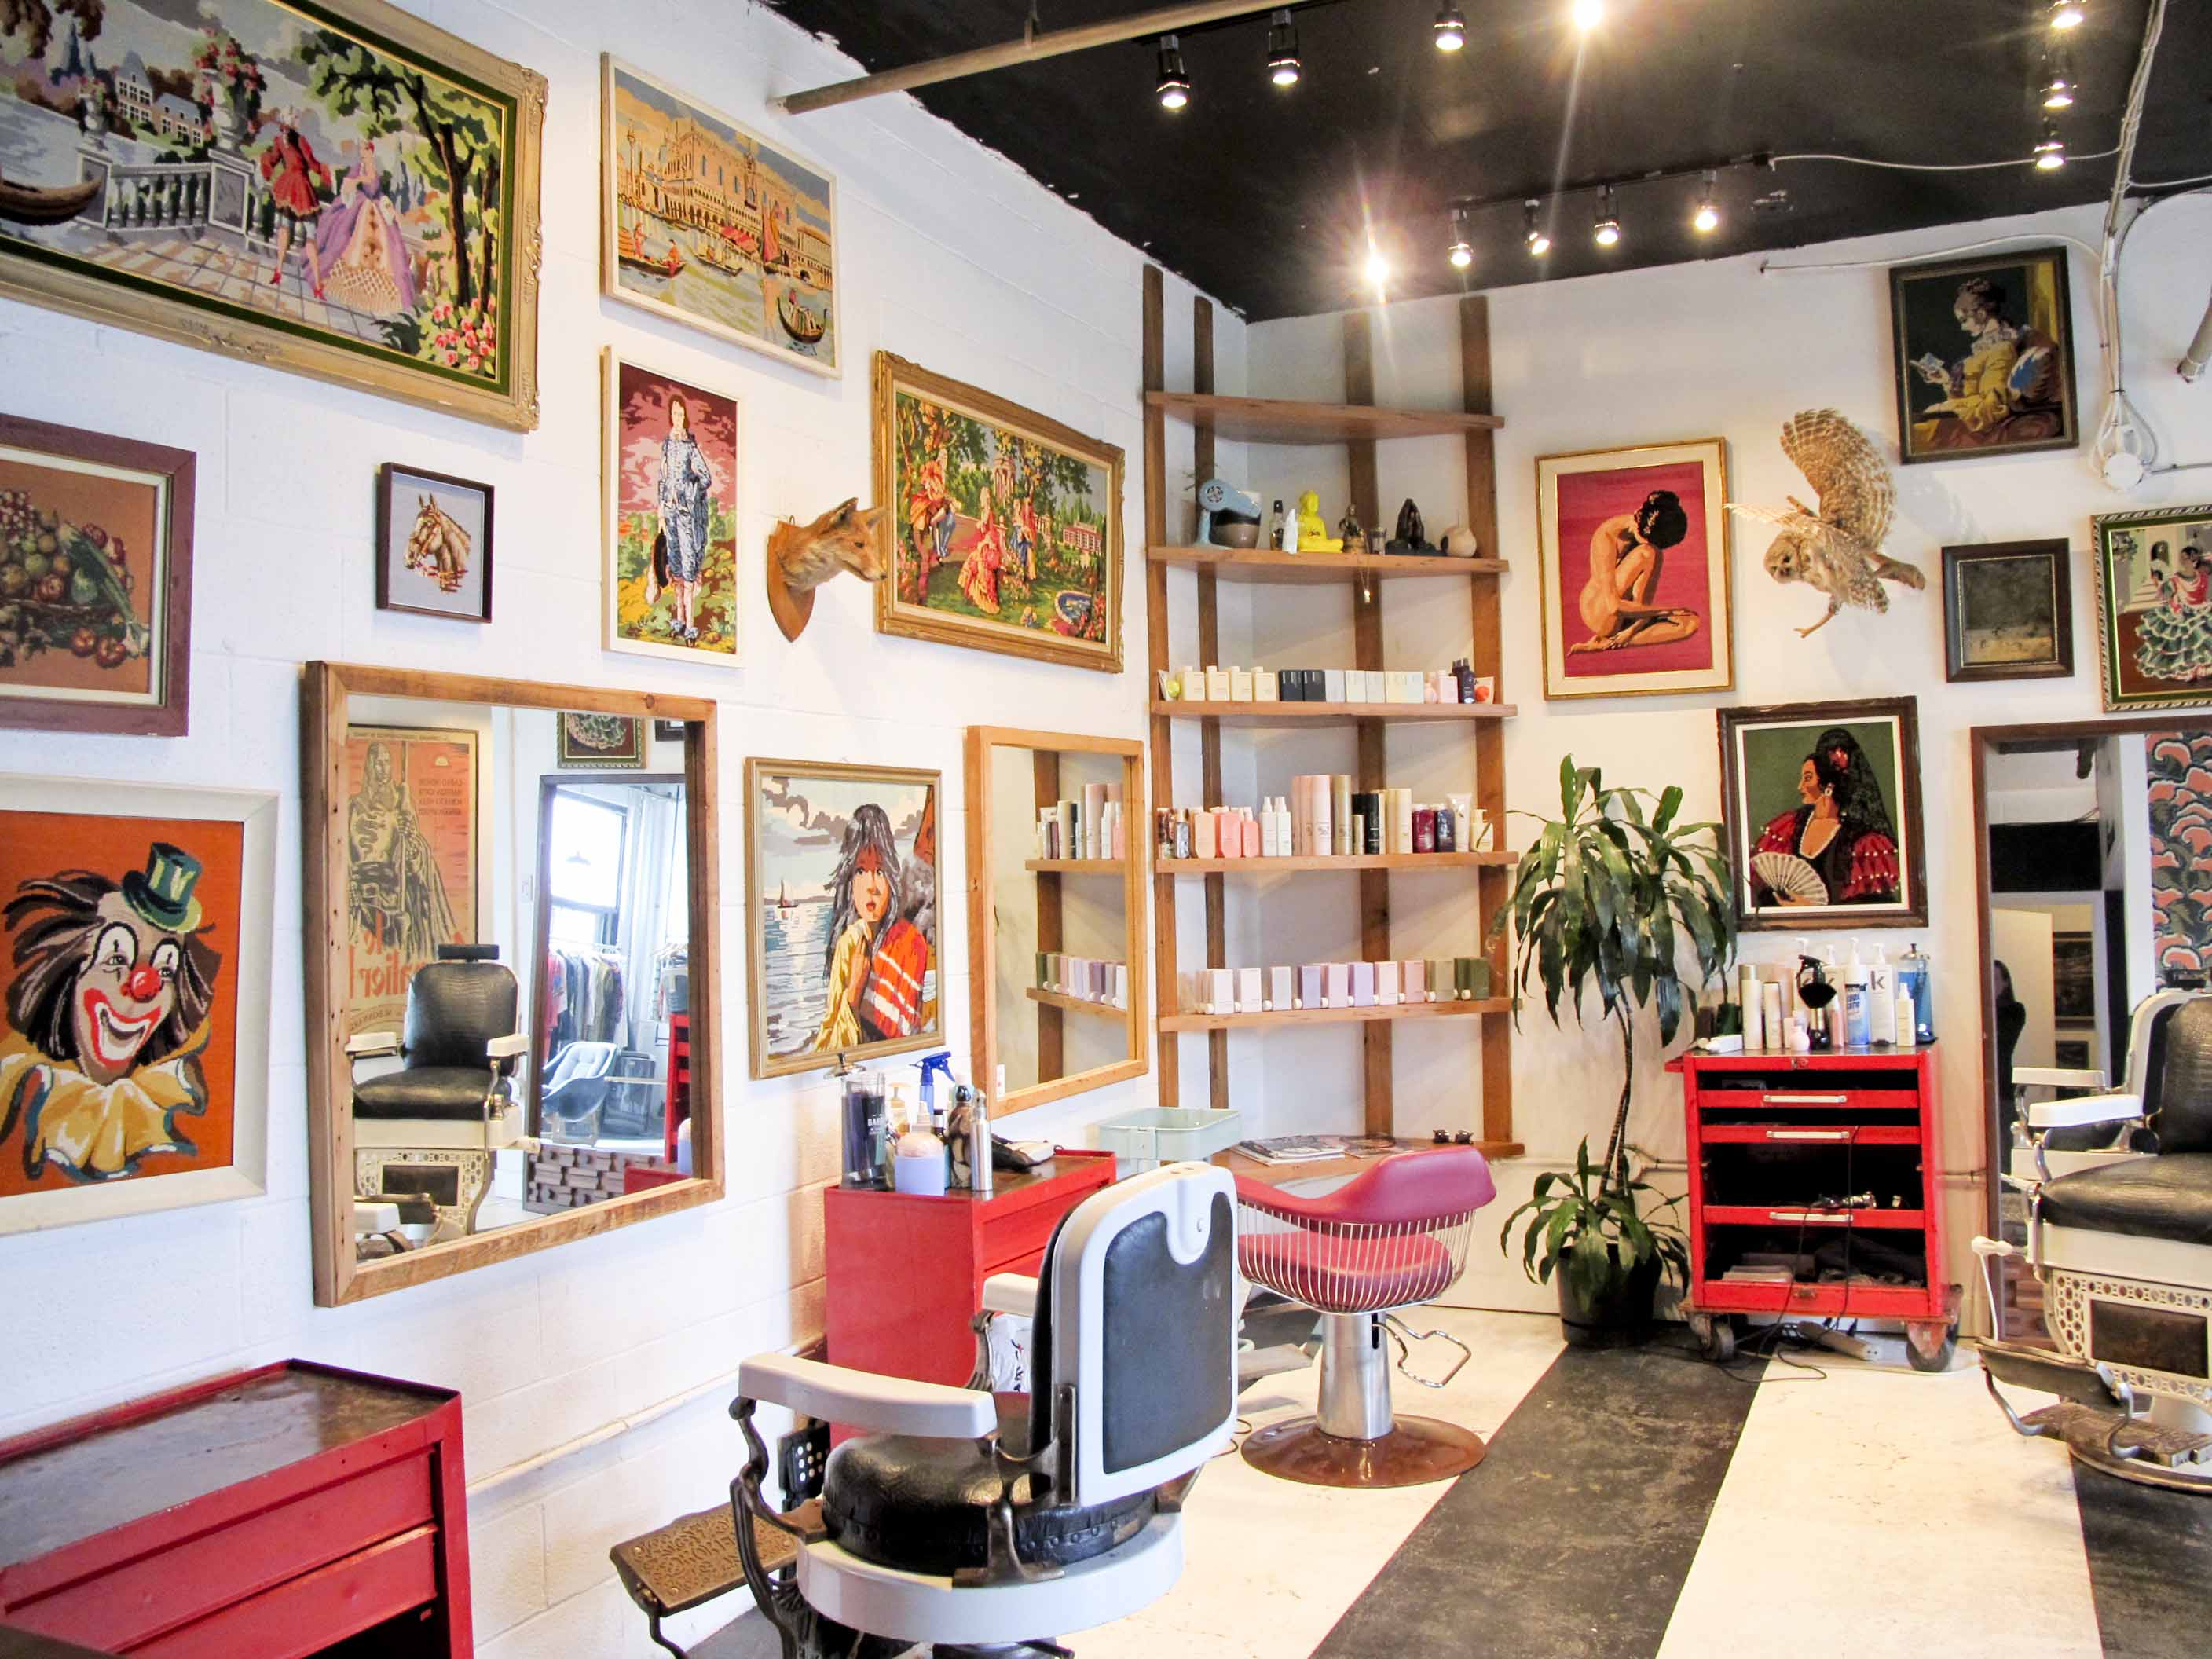 21 of Las Vegas' Best Hair Salons for a Cut and Color ...